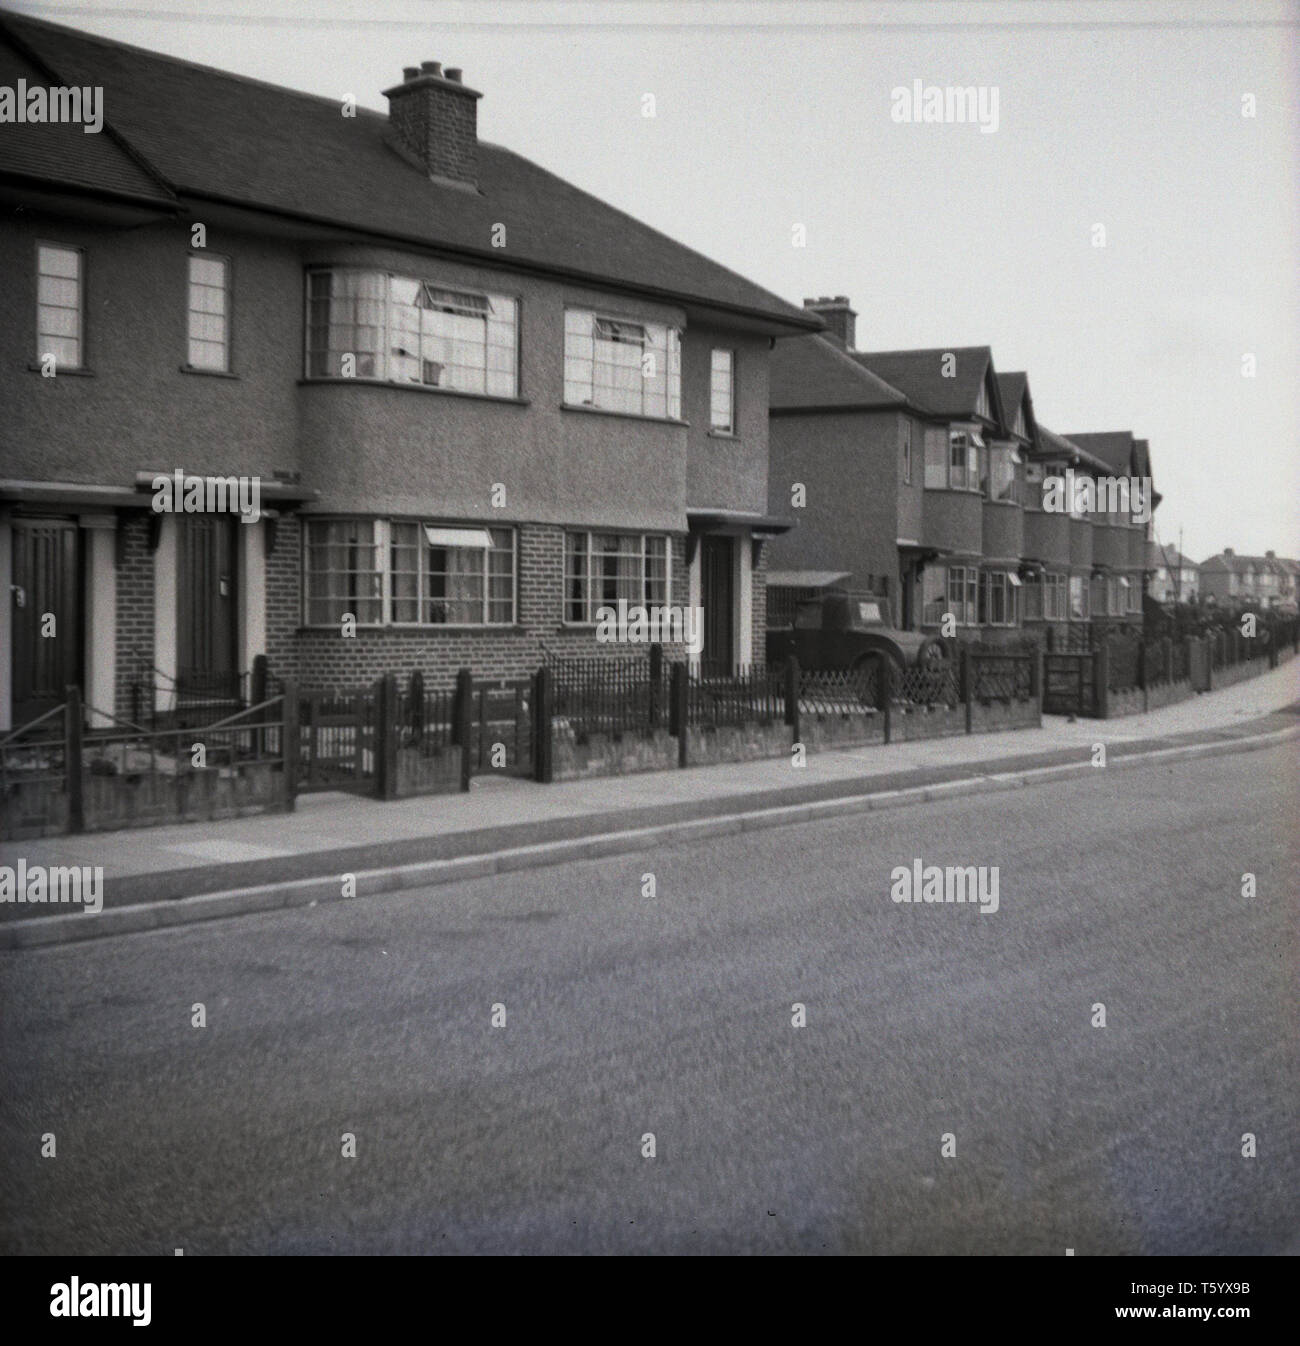 1940s, historcial, a quiet street in the suburbs, Ruislip, West London, England showing rows of two-storey terraced, pebbledash housing. Stock Photo